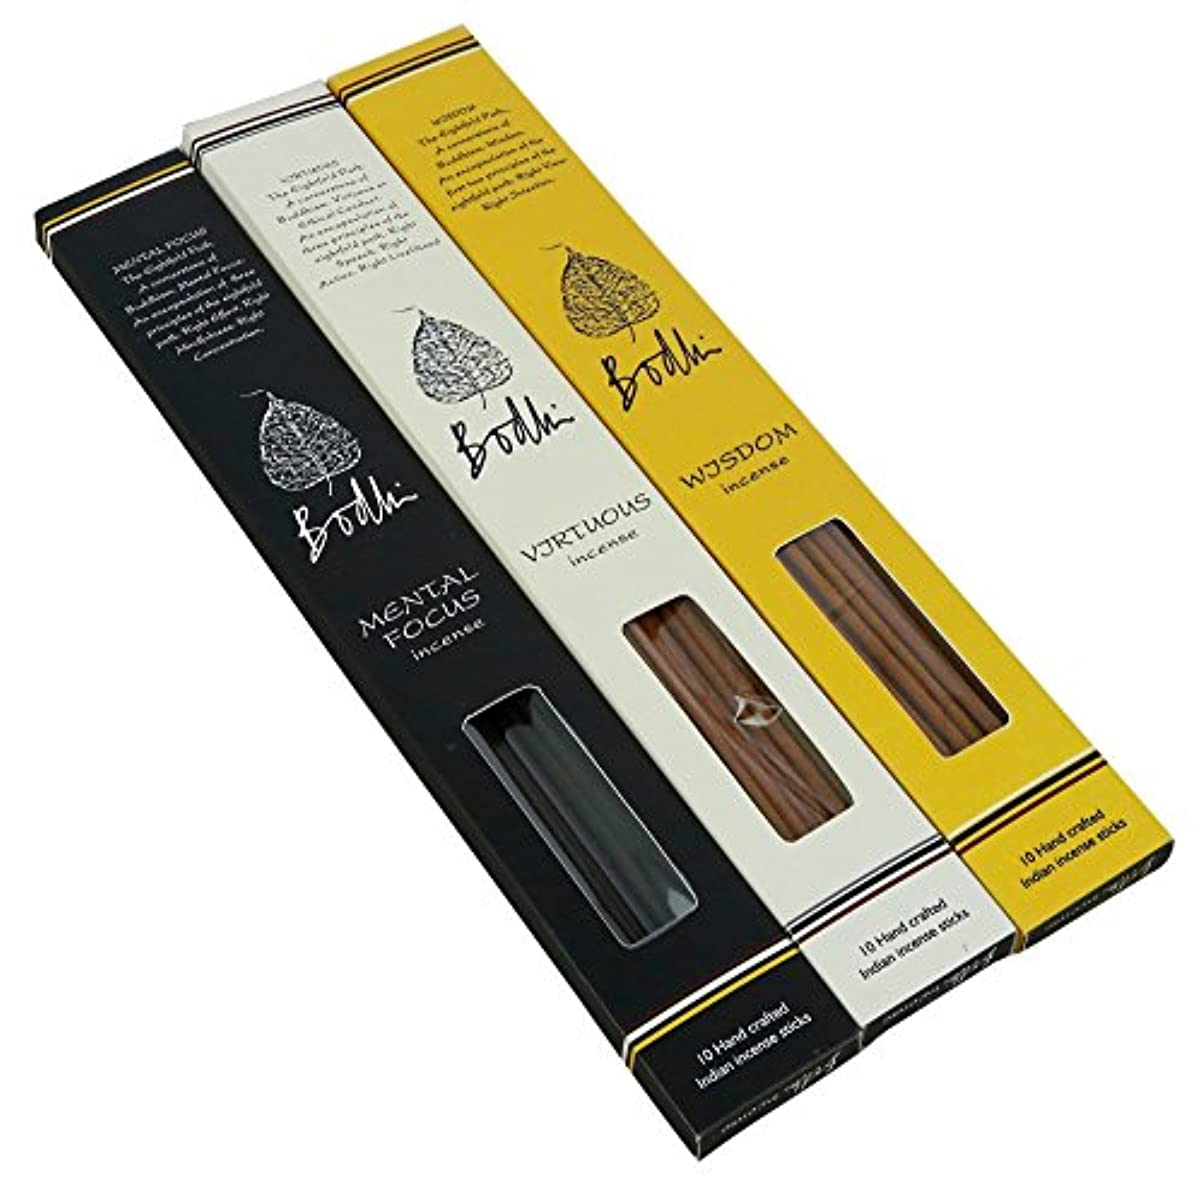 誰かナイトスポット包囲Bodhi Buddhist Incense Sticks forホームTemple – Virtuous、知恵とMentalフォーカスFragrances、手作り合計30 Sticks